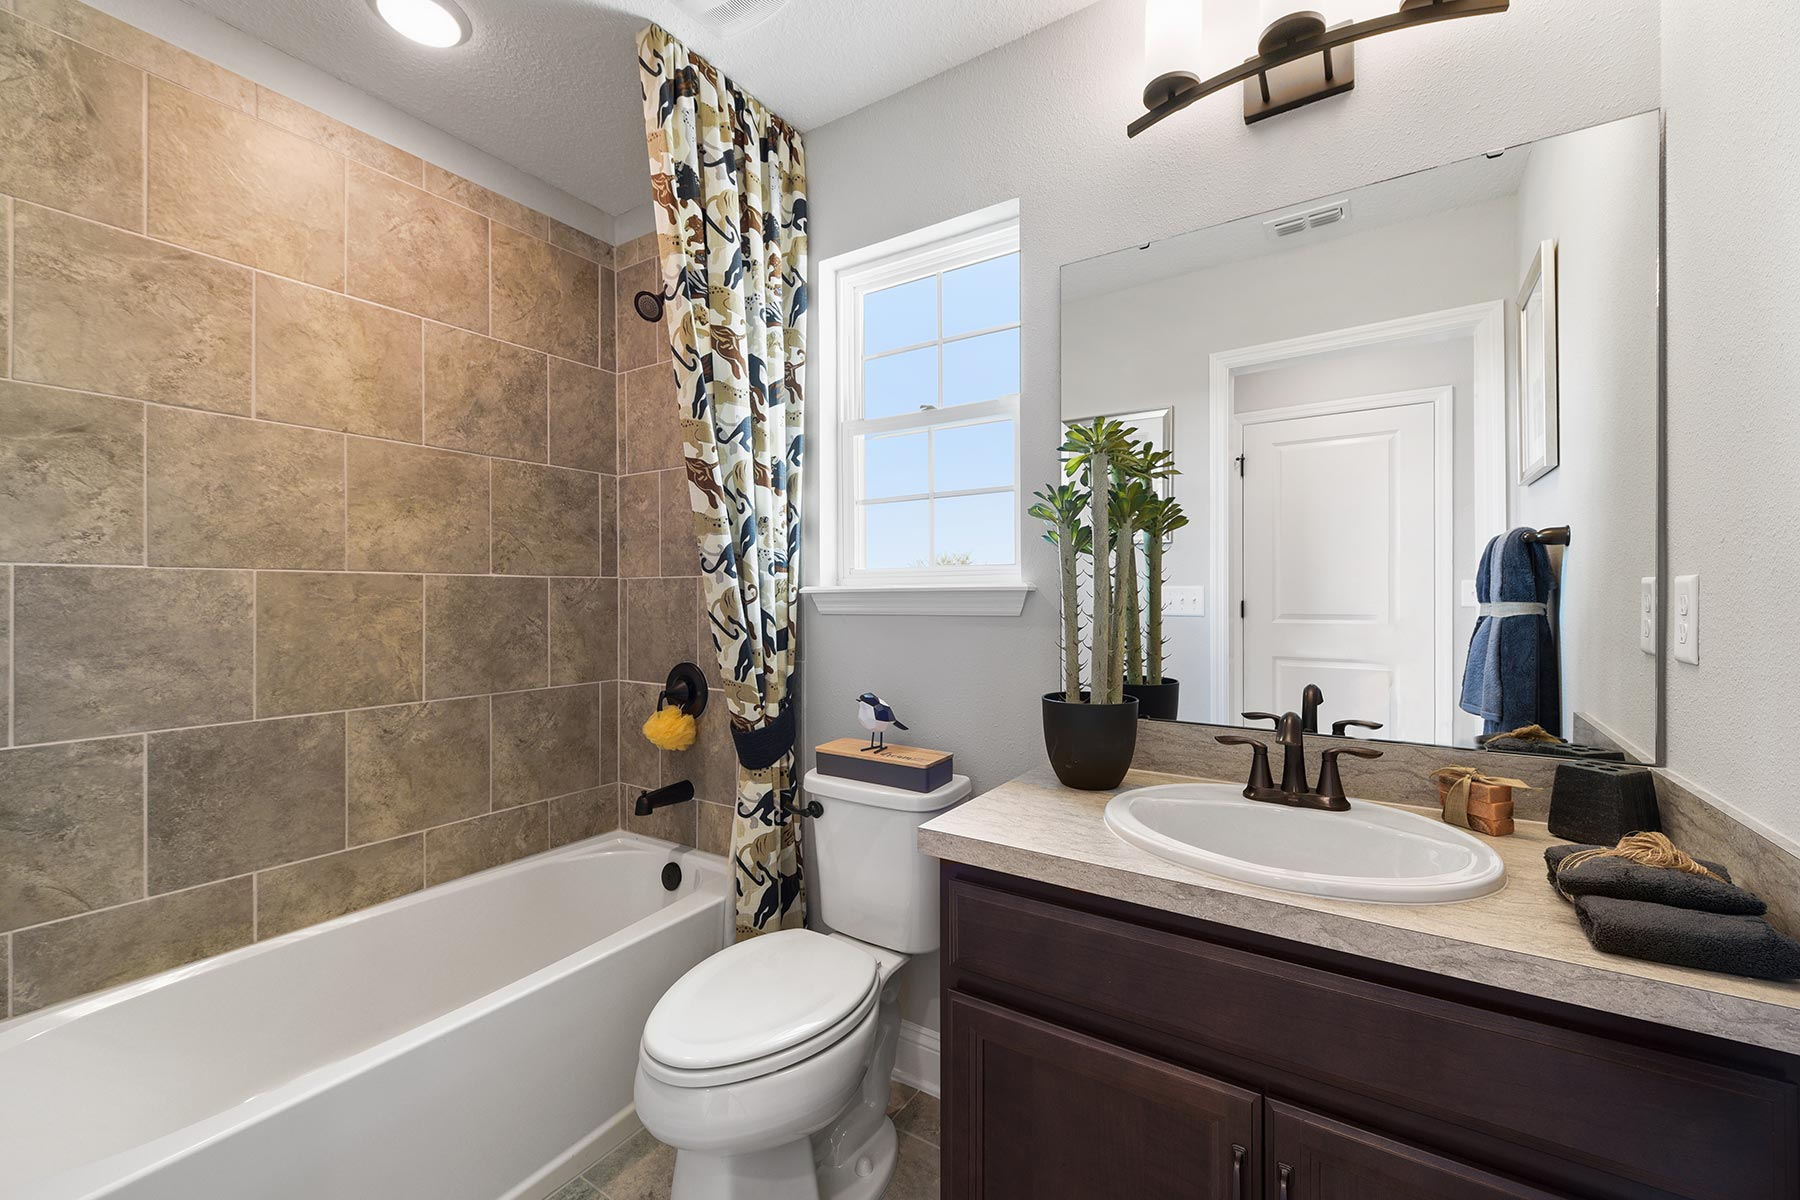 Spring Plan Bath at Wells Creek in Jacksonville Florida by Mattamy Homes